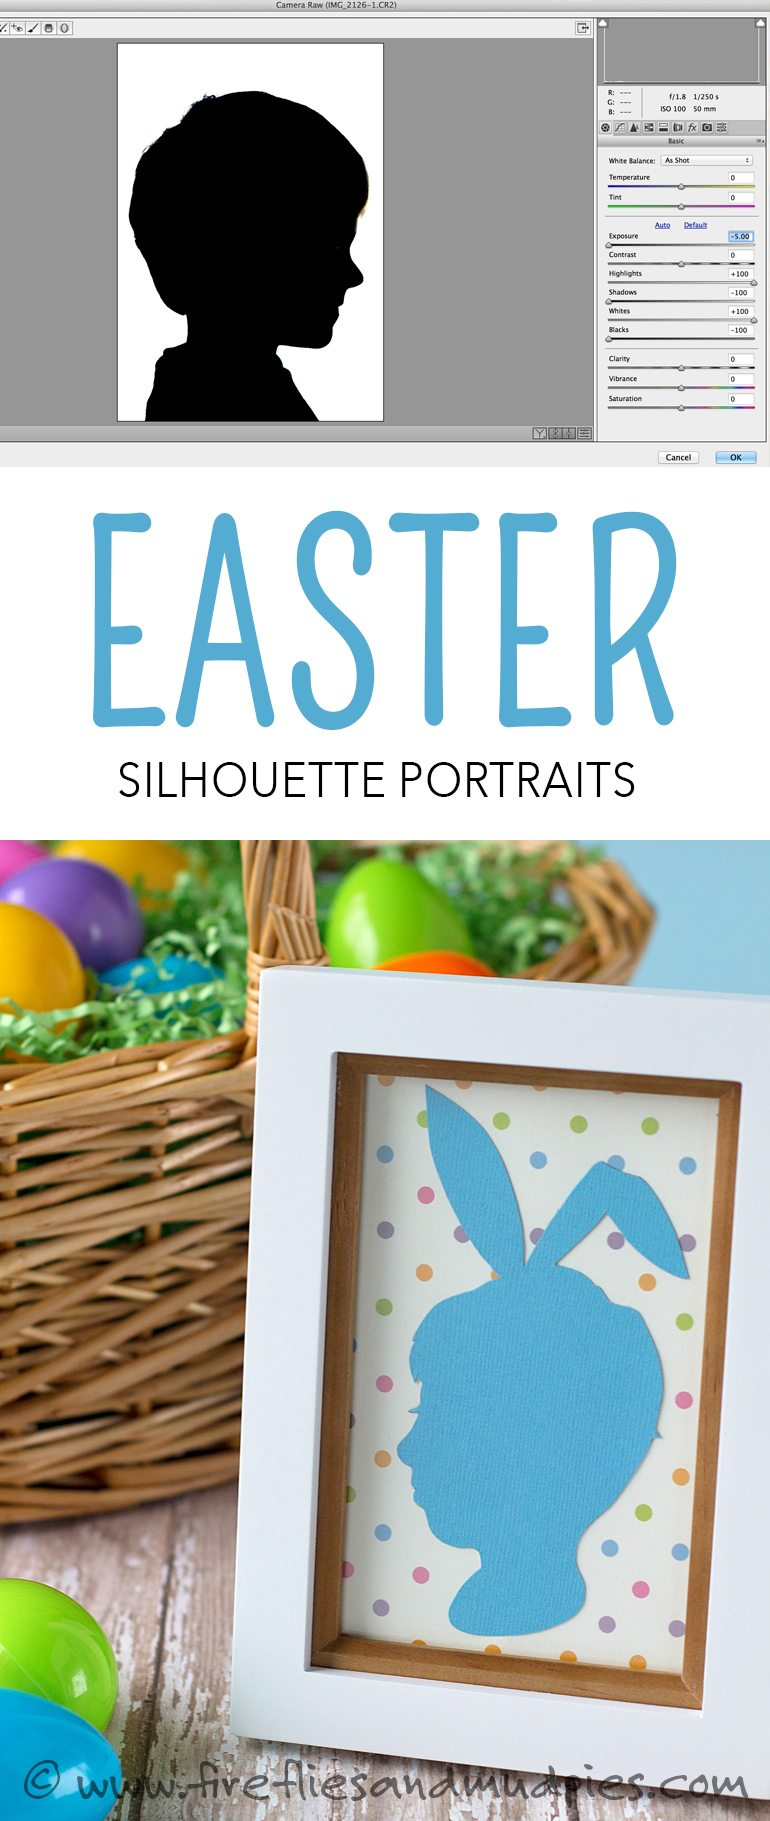 Easter Silhouette Portraits - A whimsical keepsake craft for families! | Fireflies and Mud Pies